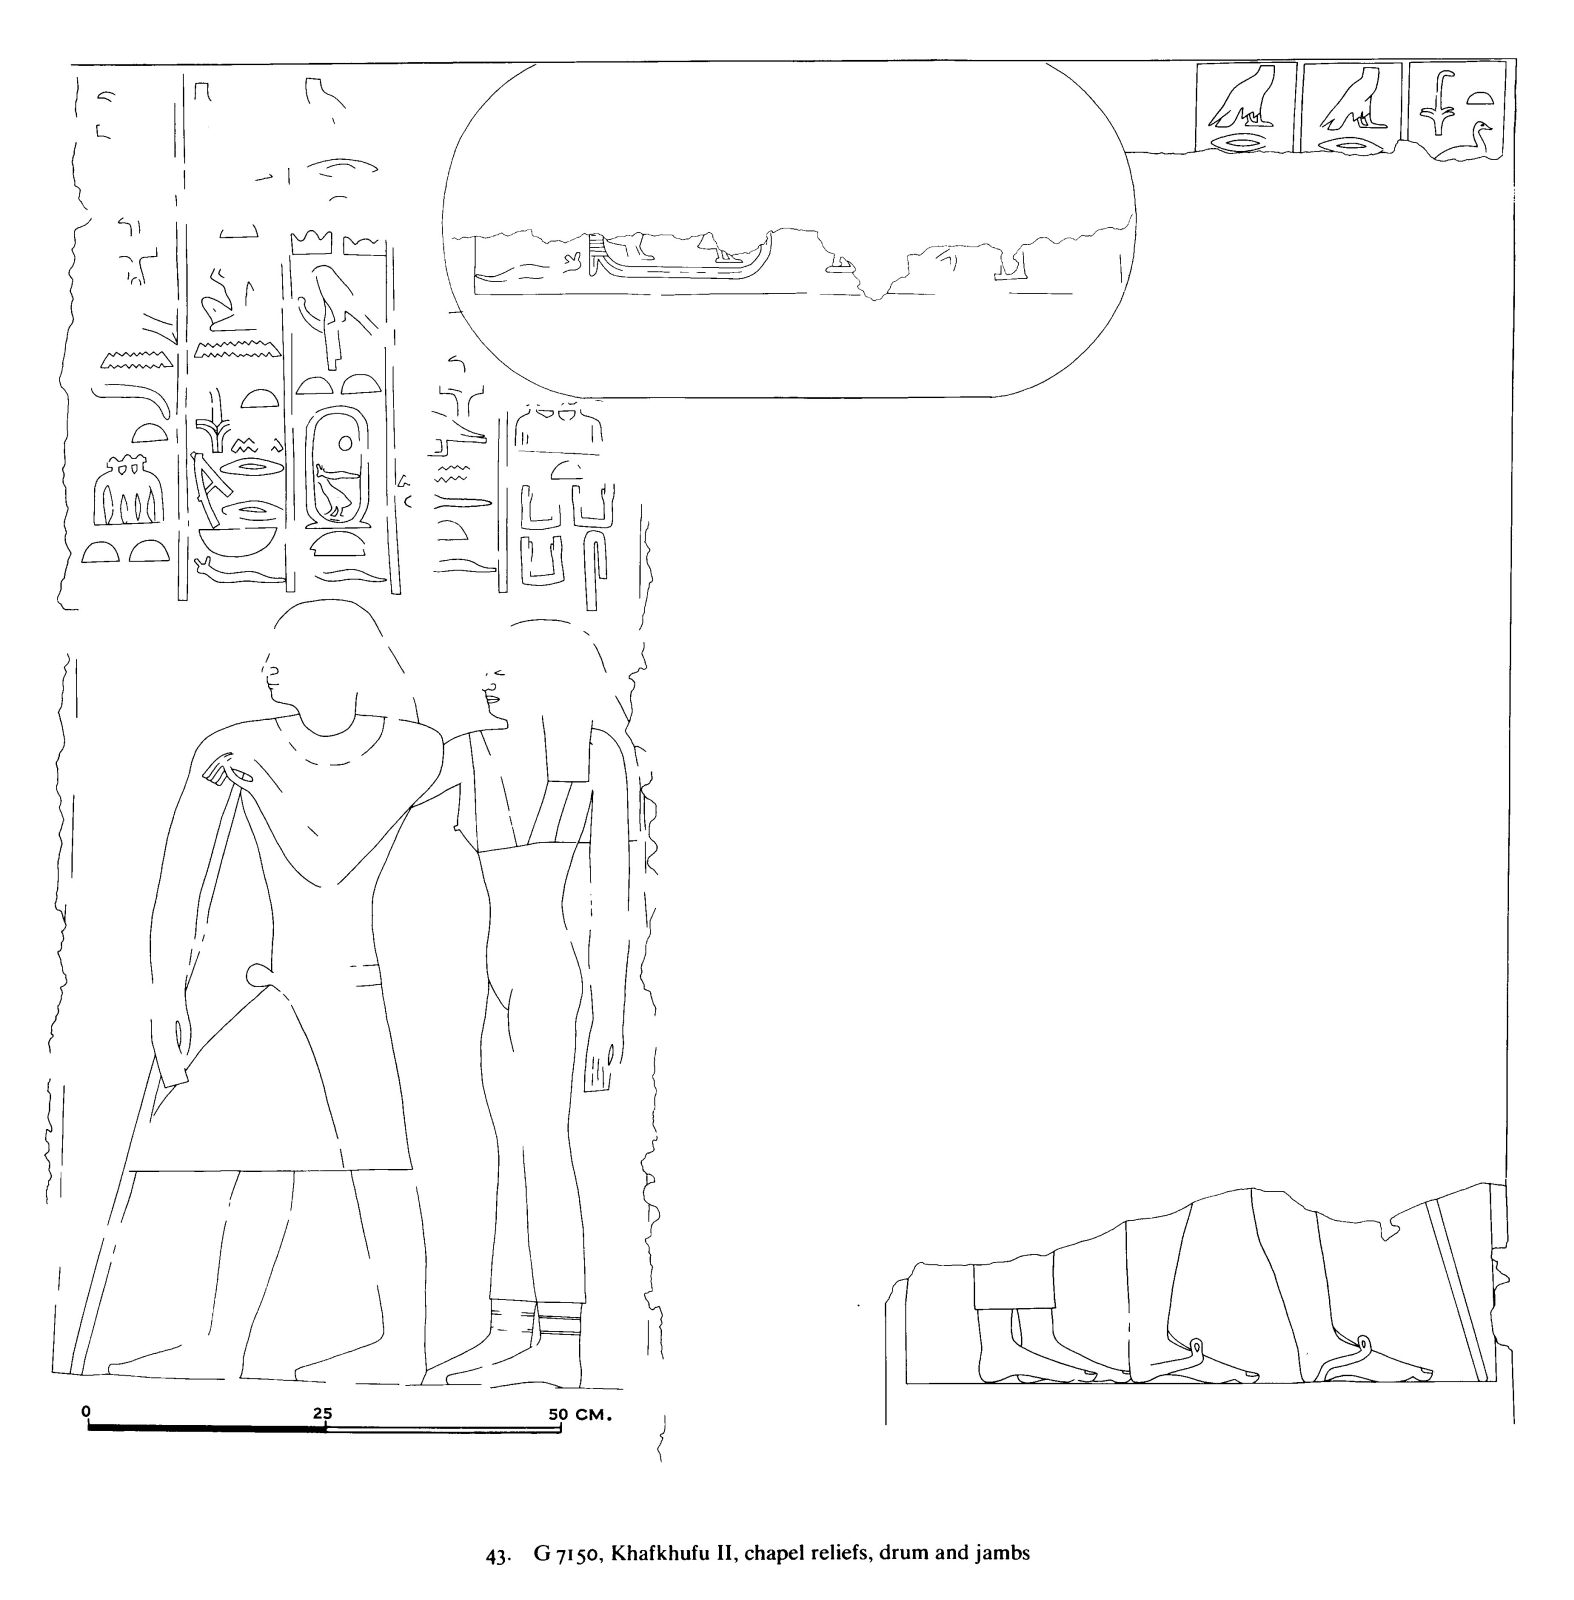 Drawings: G 7150: relief from chapel, drum, and jambs